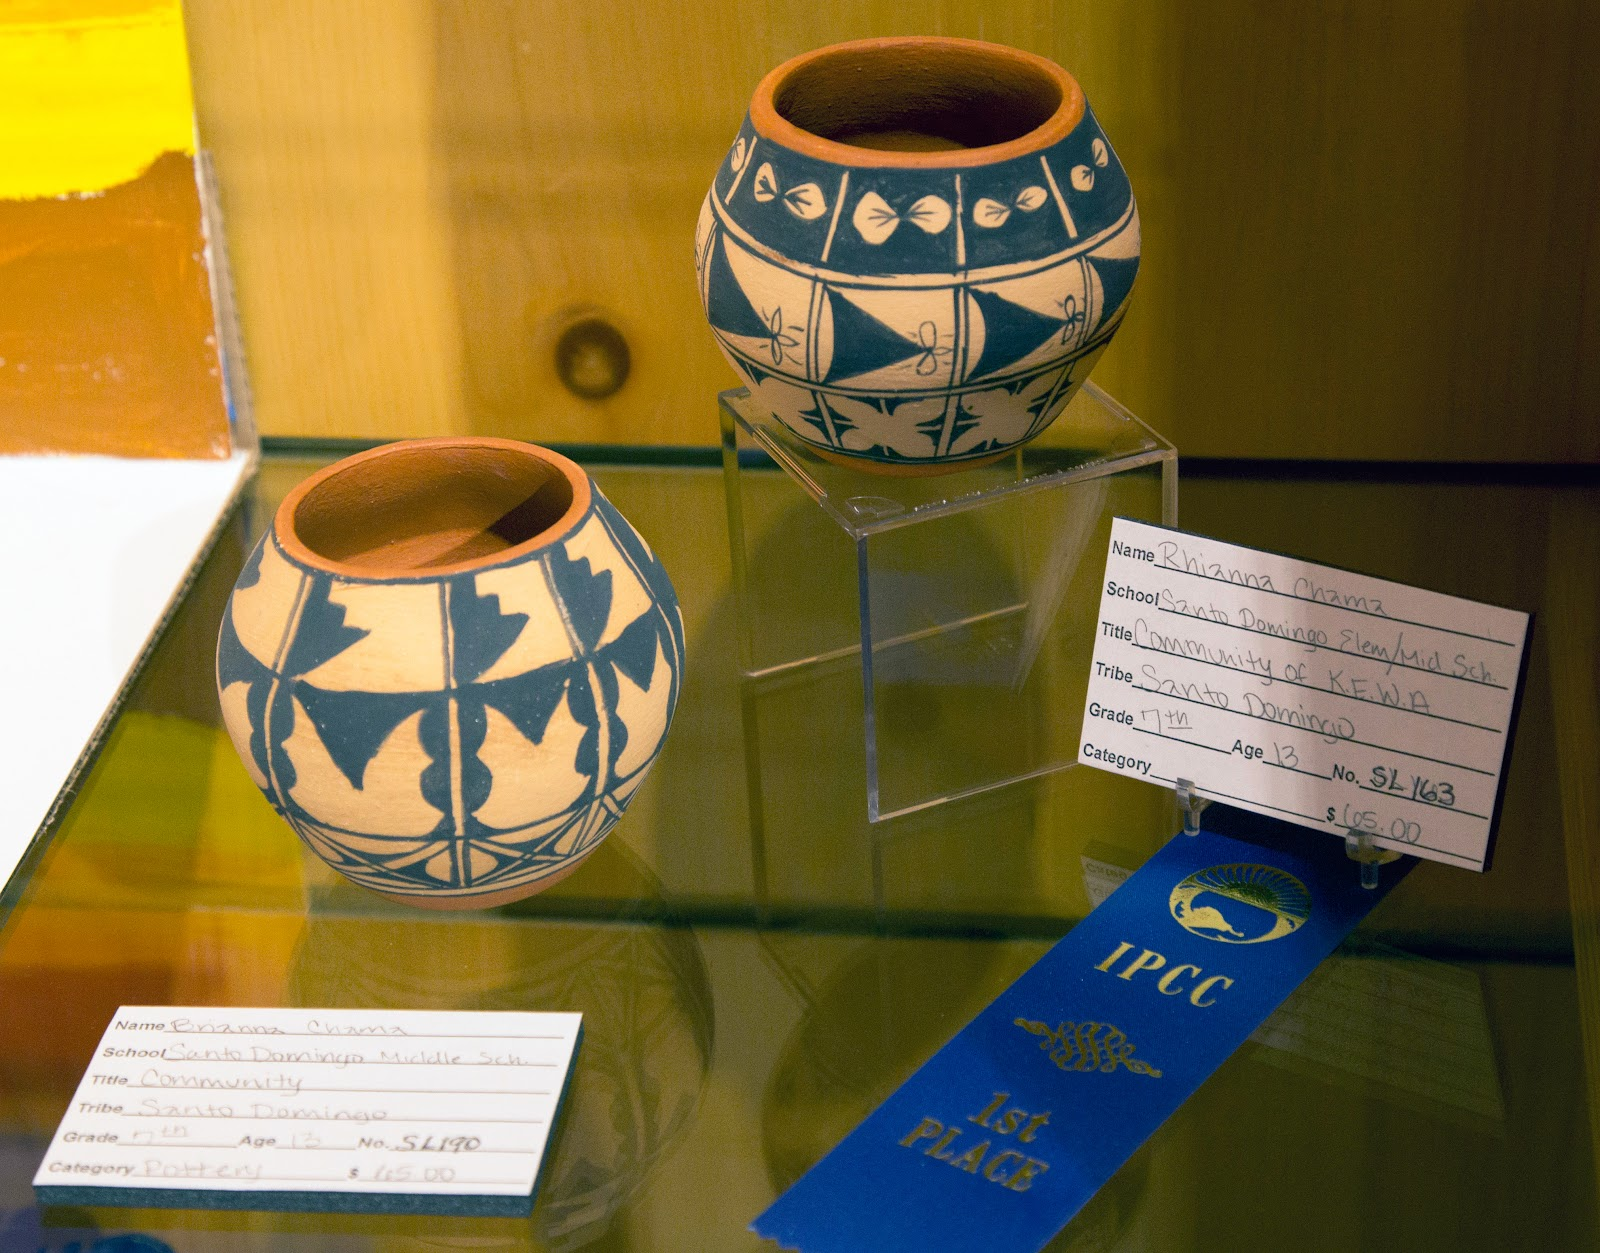 Beautiful Blue Ribbon (1st Place) traditional pottery work at the Native American Student Art Show 2015 (credit: Indian Pueblo Cultural Center)